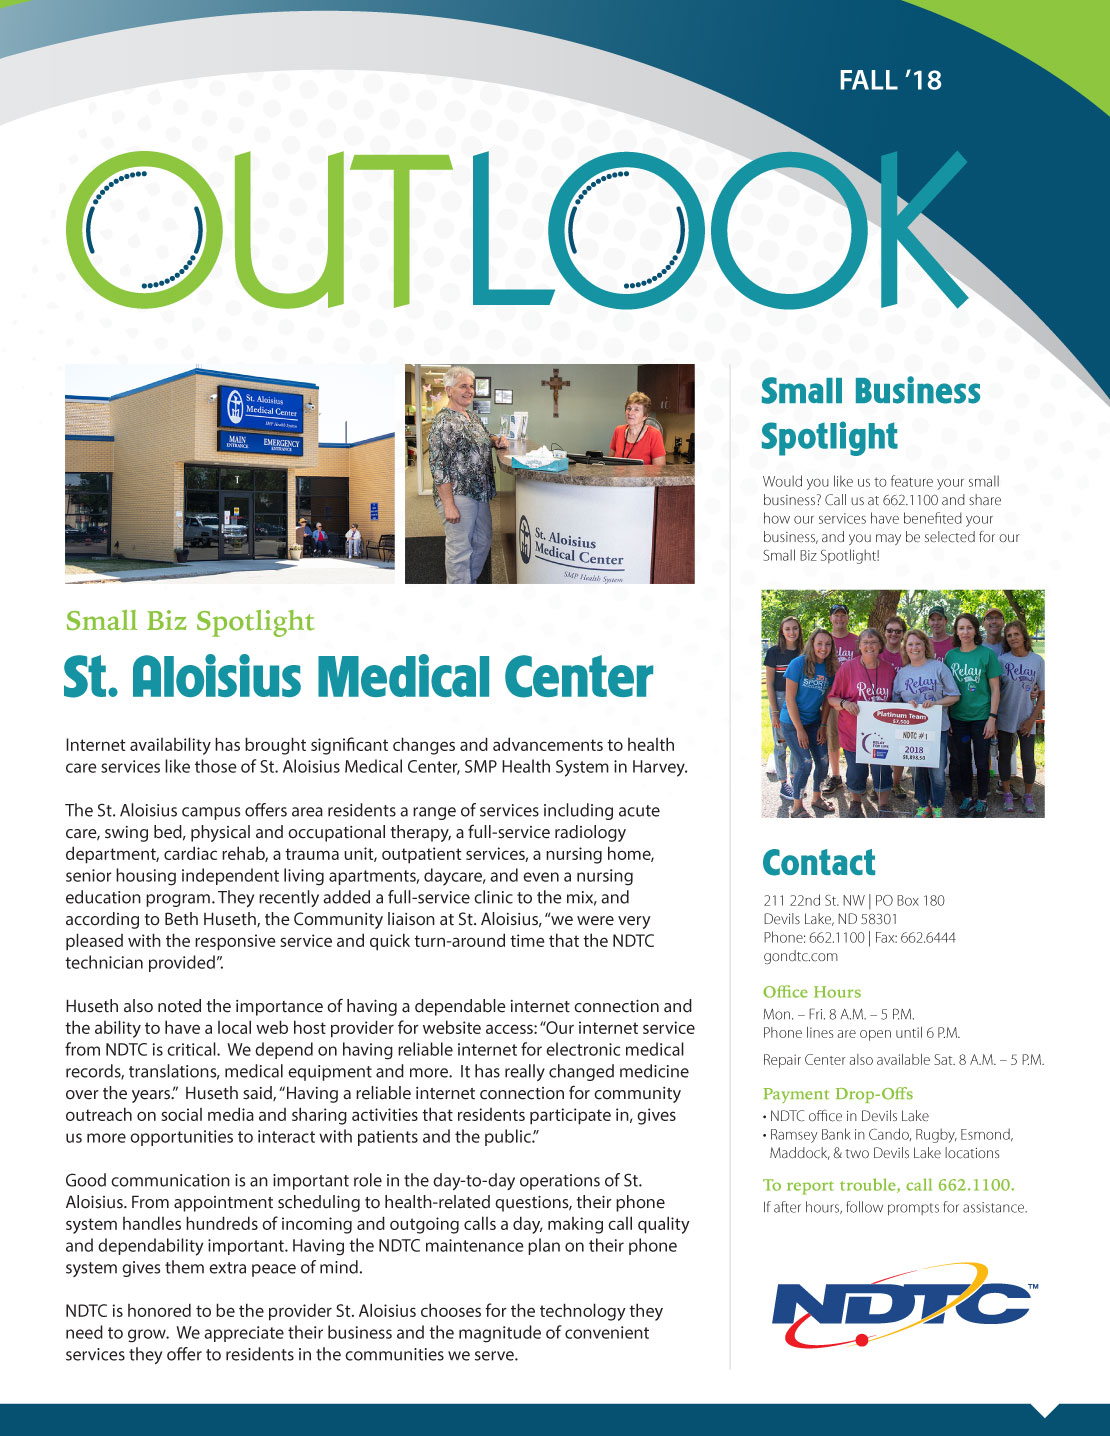 Fall 2018 Outlook Newsletter Preview